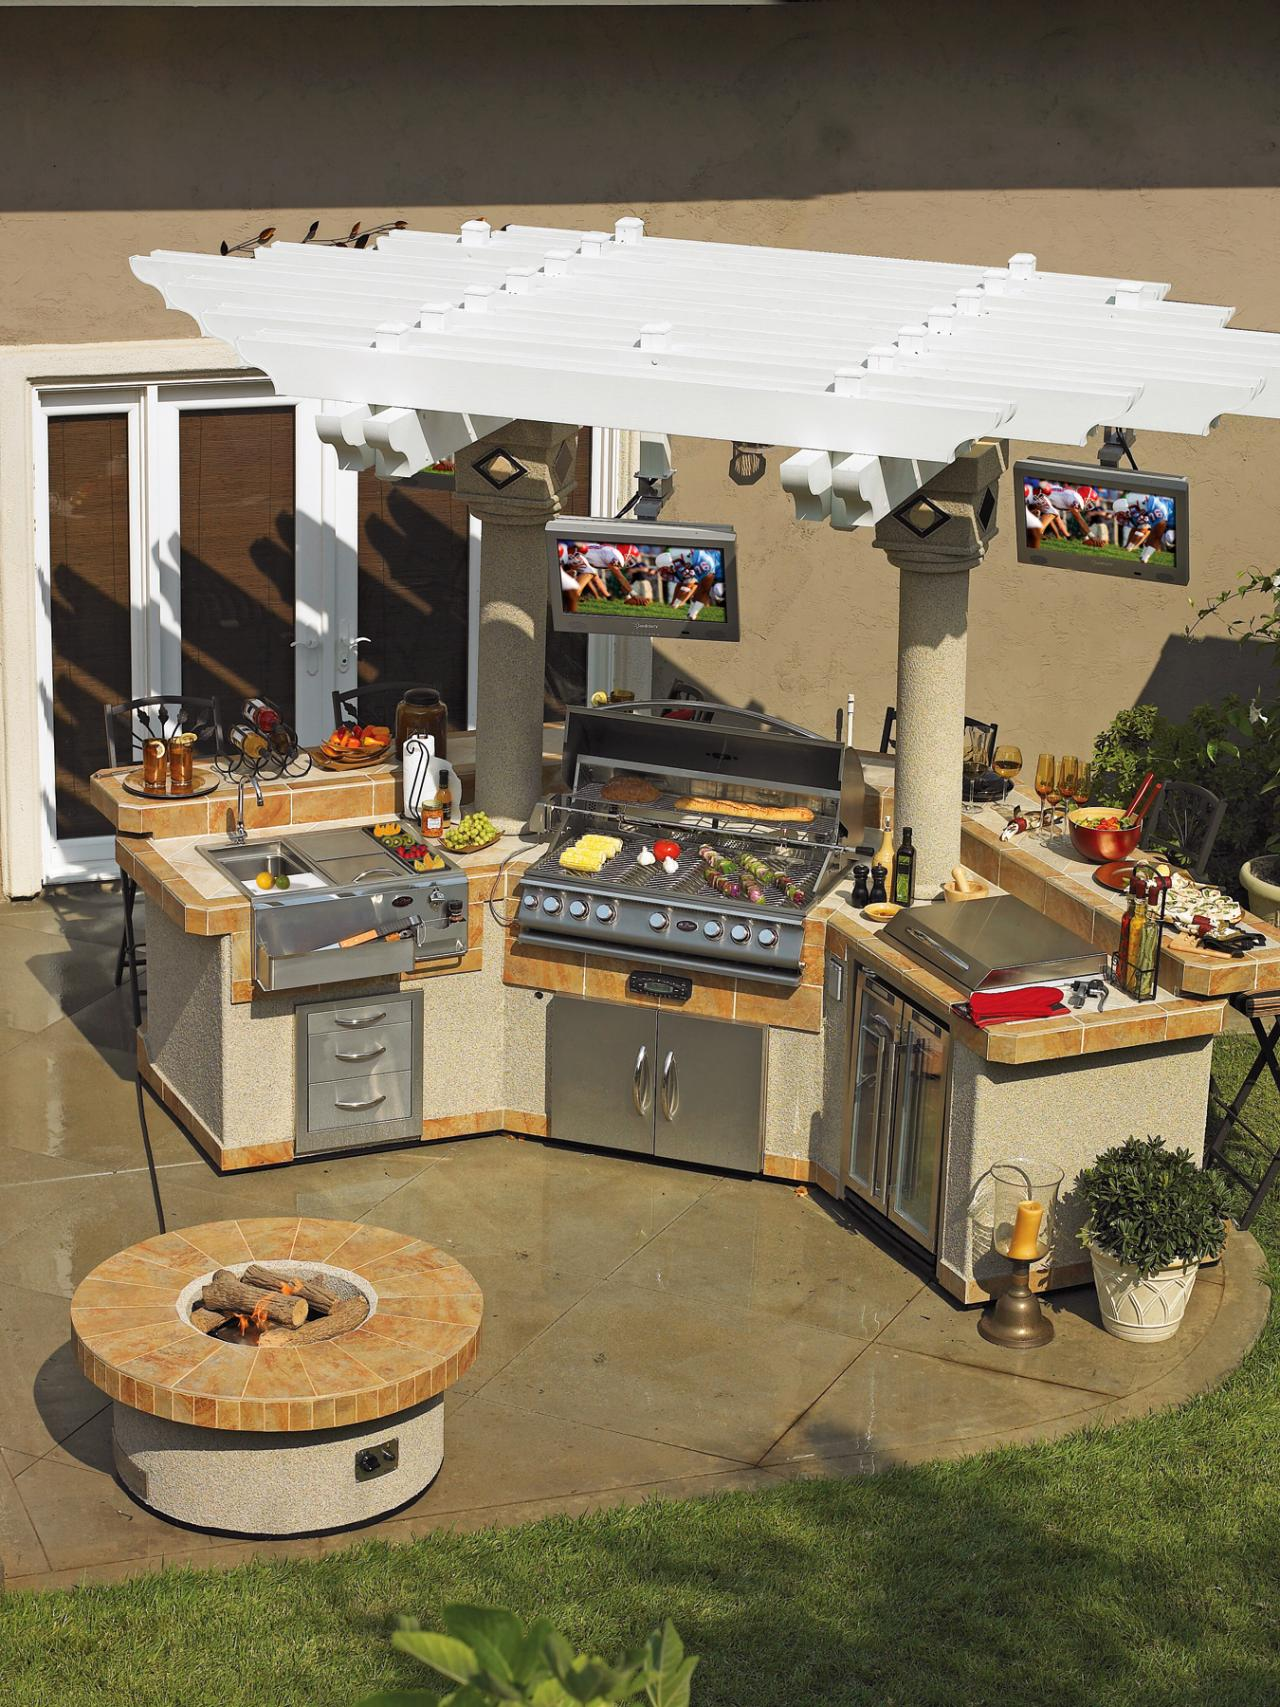 Outdoor Kitchens Designs 12 gorgeous outdoor kitchens | hgtv's decorating & design blog | hgtv